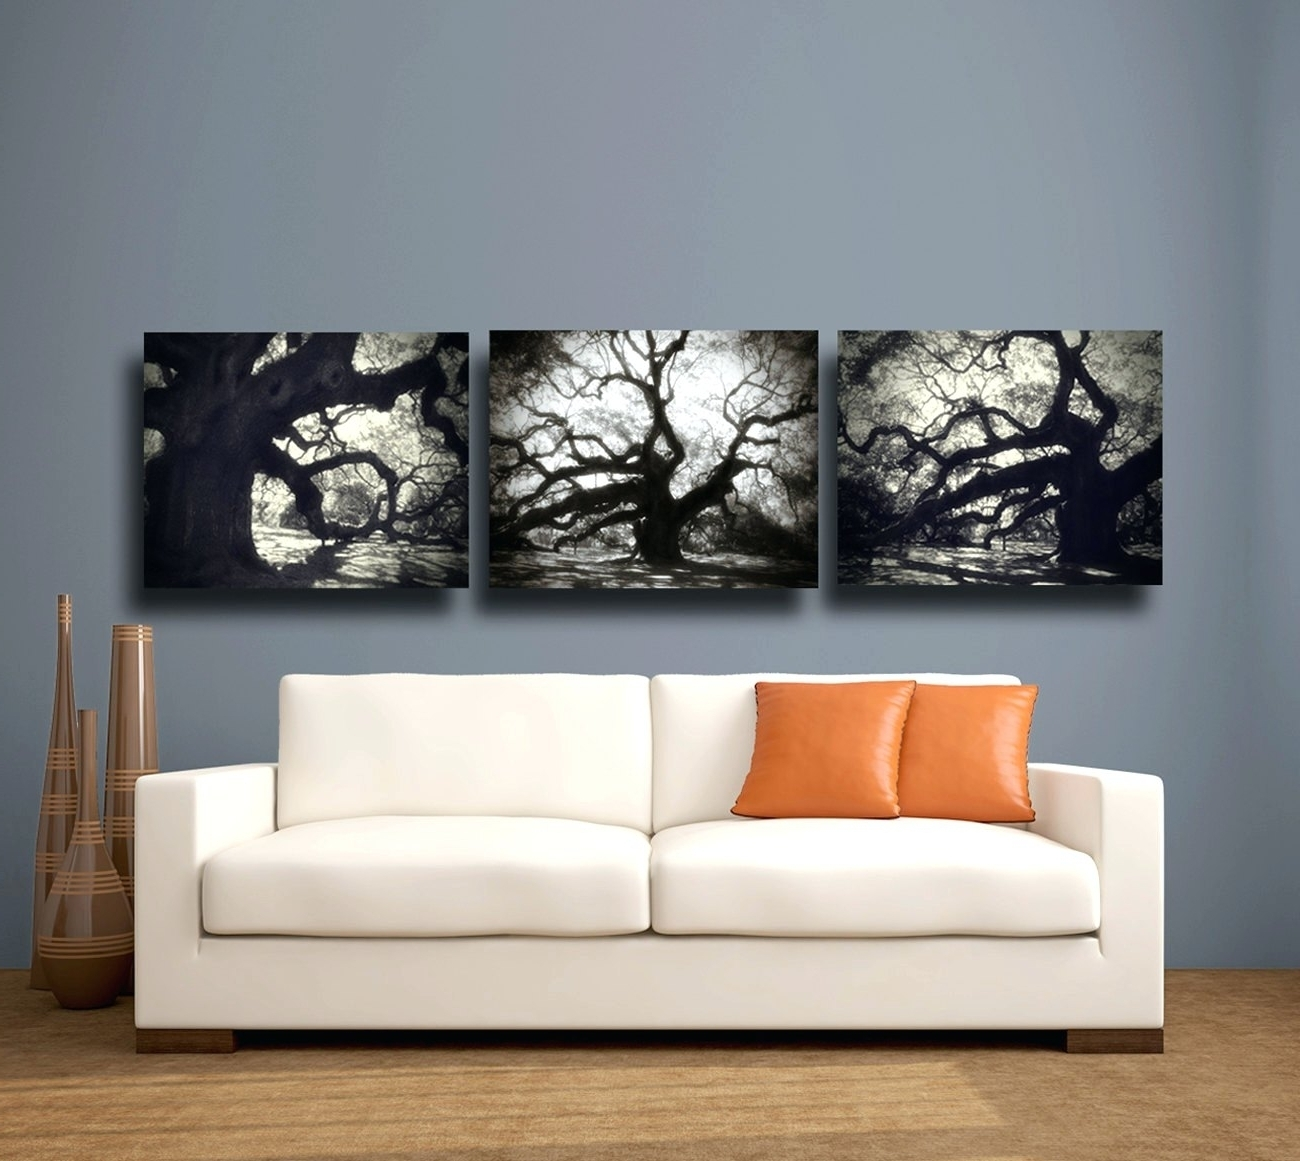 15 Best Collection Of Canvas Wall Art At Target Within Most Current Canvas Wall Art At Target (View 3 of 15)